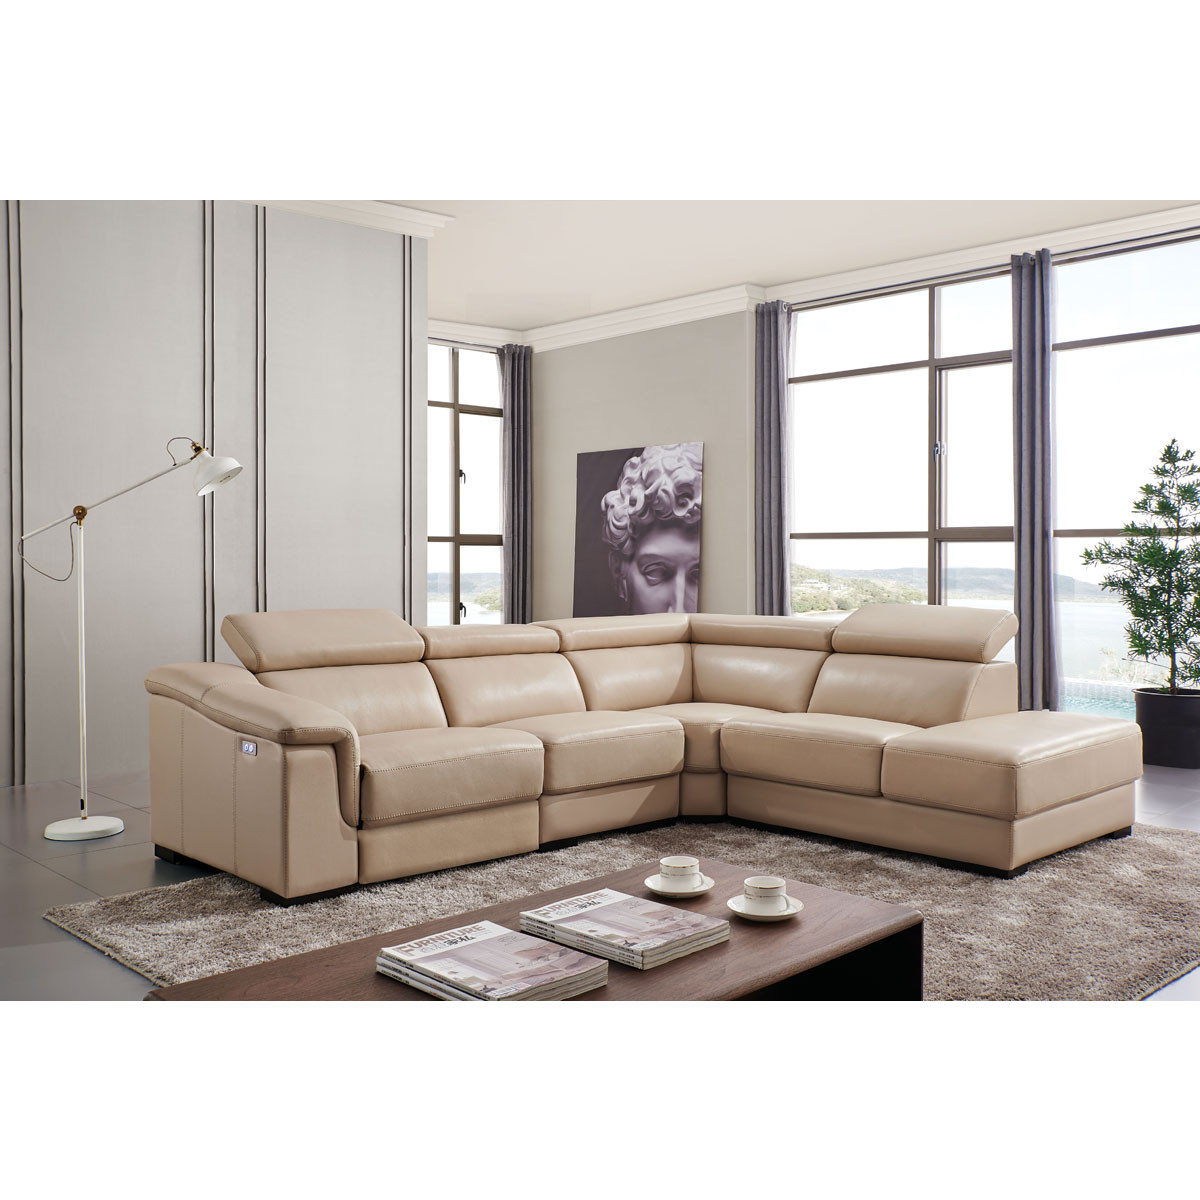 760 Sectional Sofa W Right Chaise Left Recliner In Beige Leather By Esf Furniture Imports